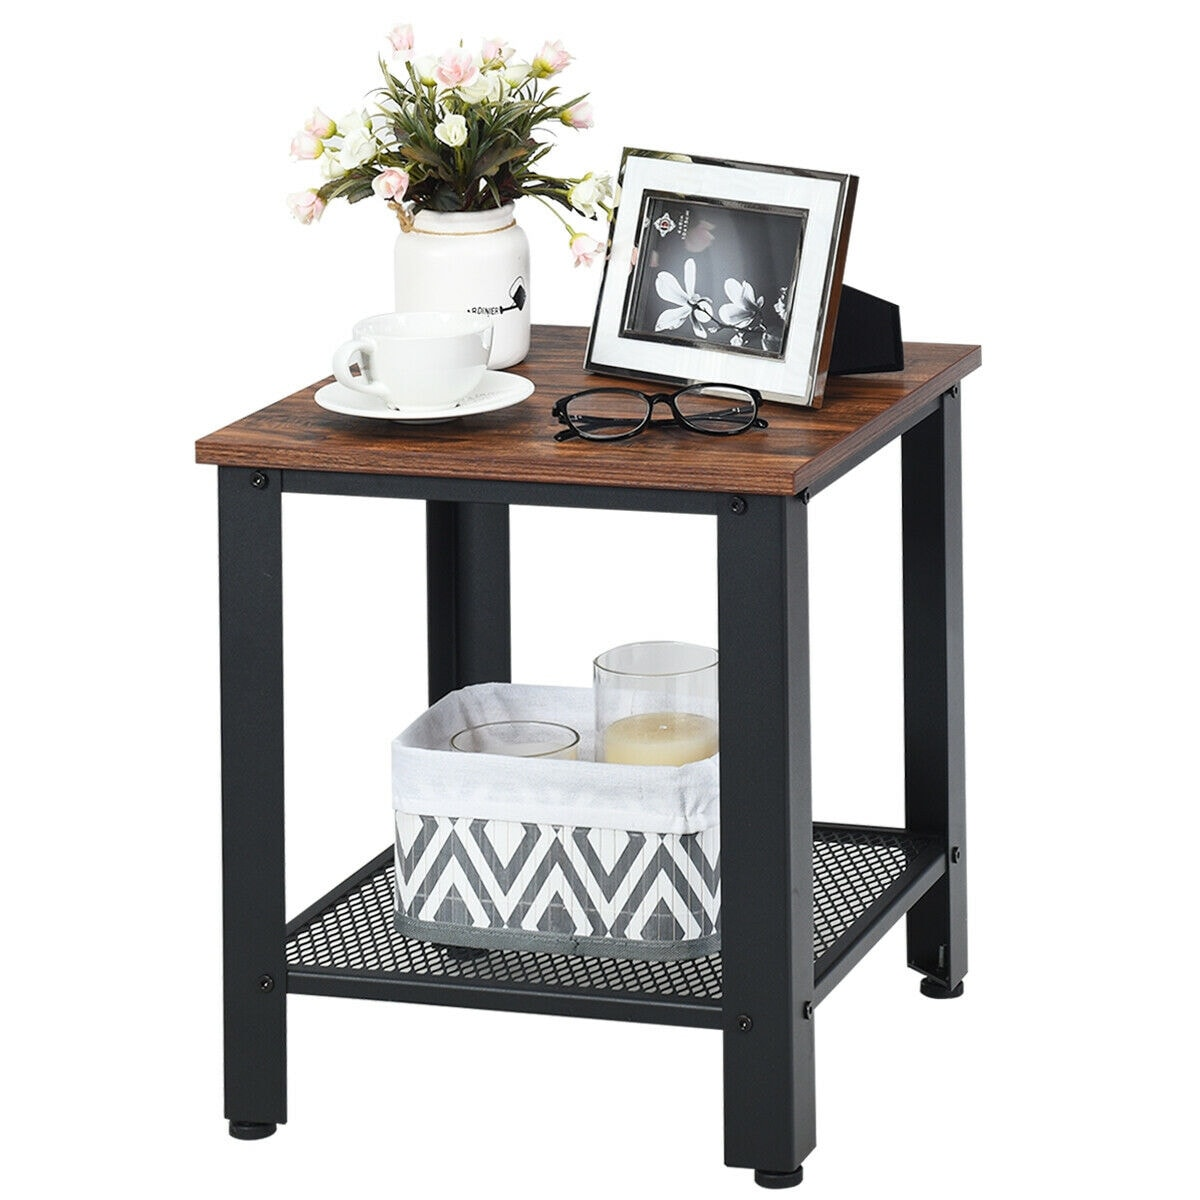 Gymax End Table 2 Tier